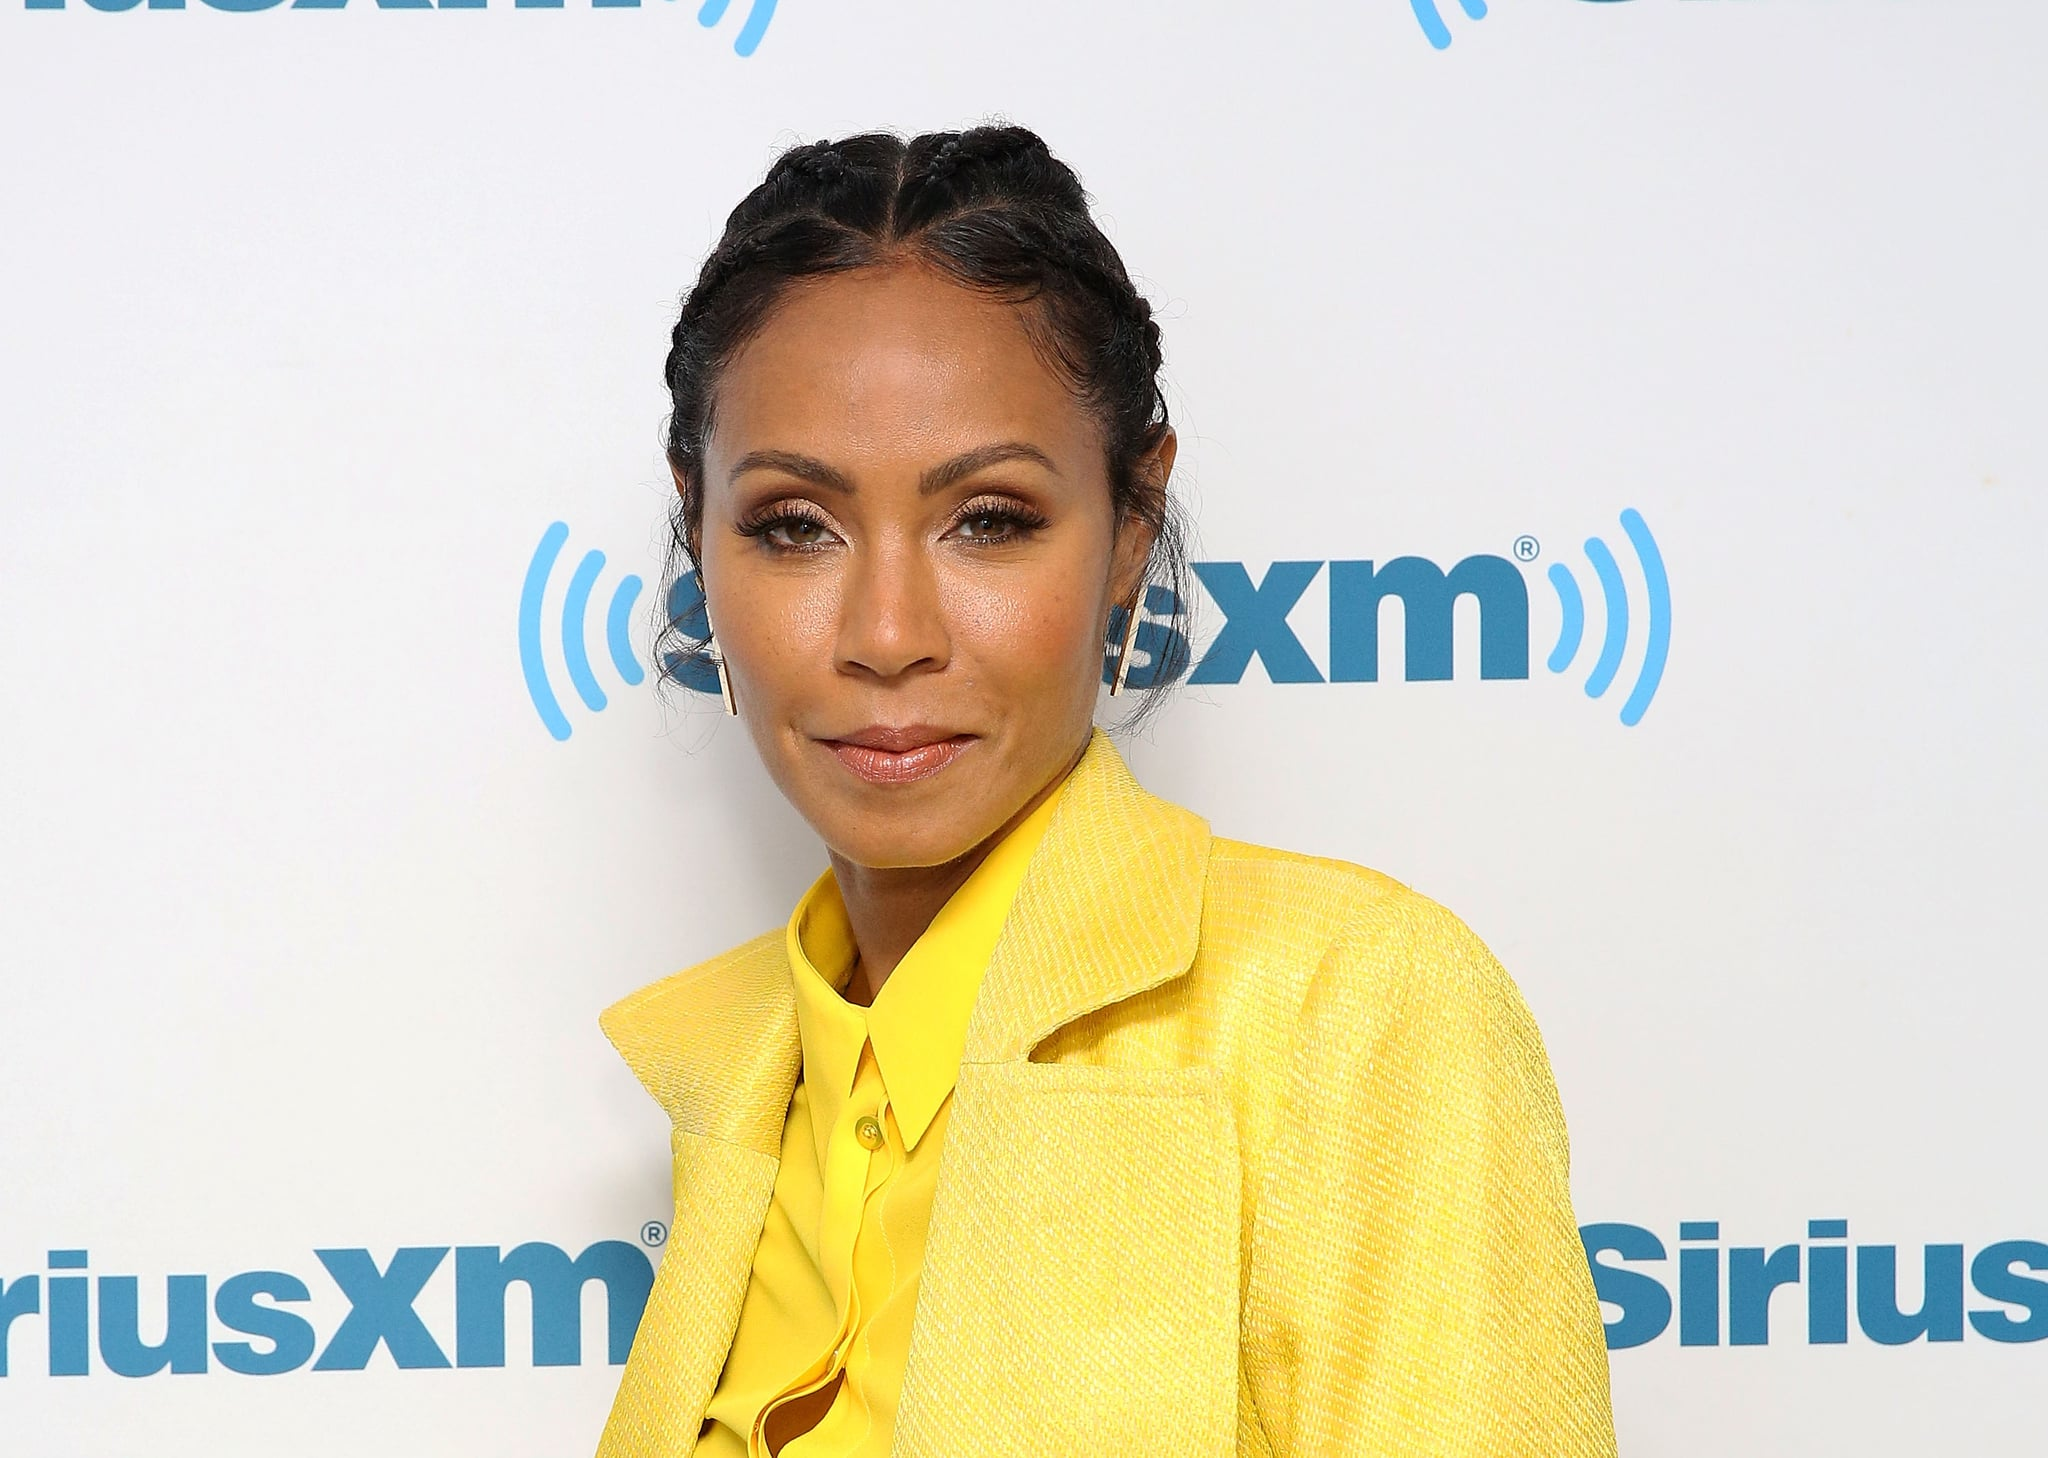 Jada Pinkett Smith Asymmetrical Haircut January 2018 Popsugar Beauty